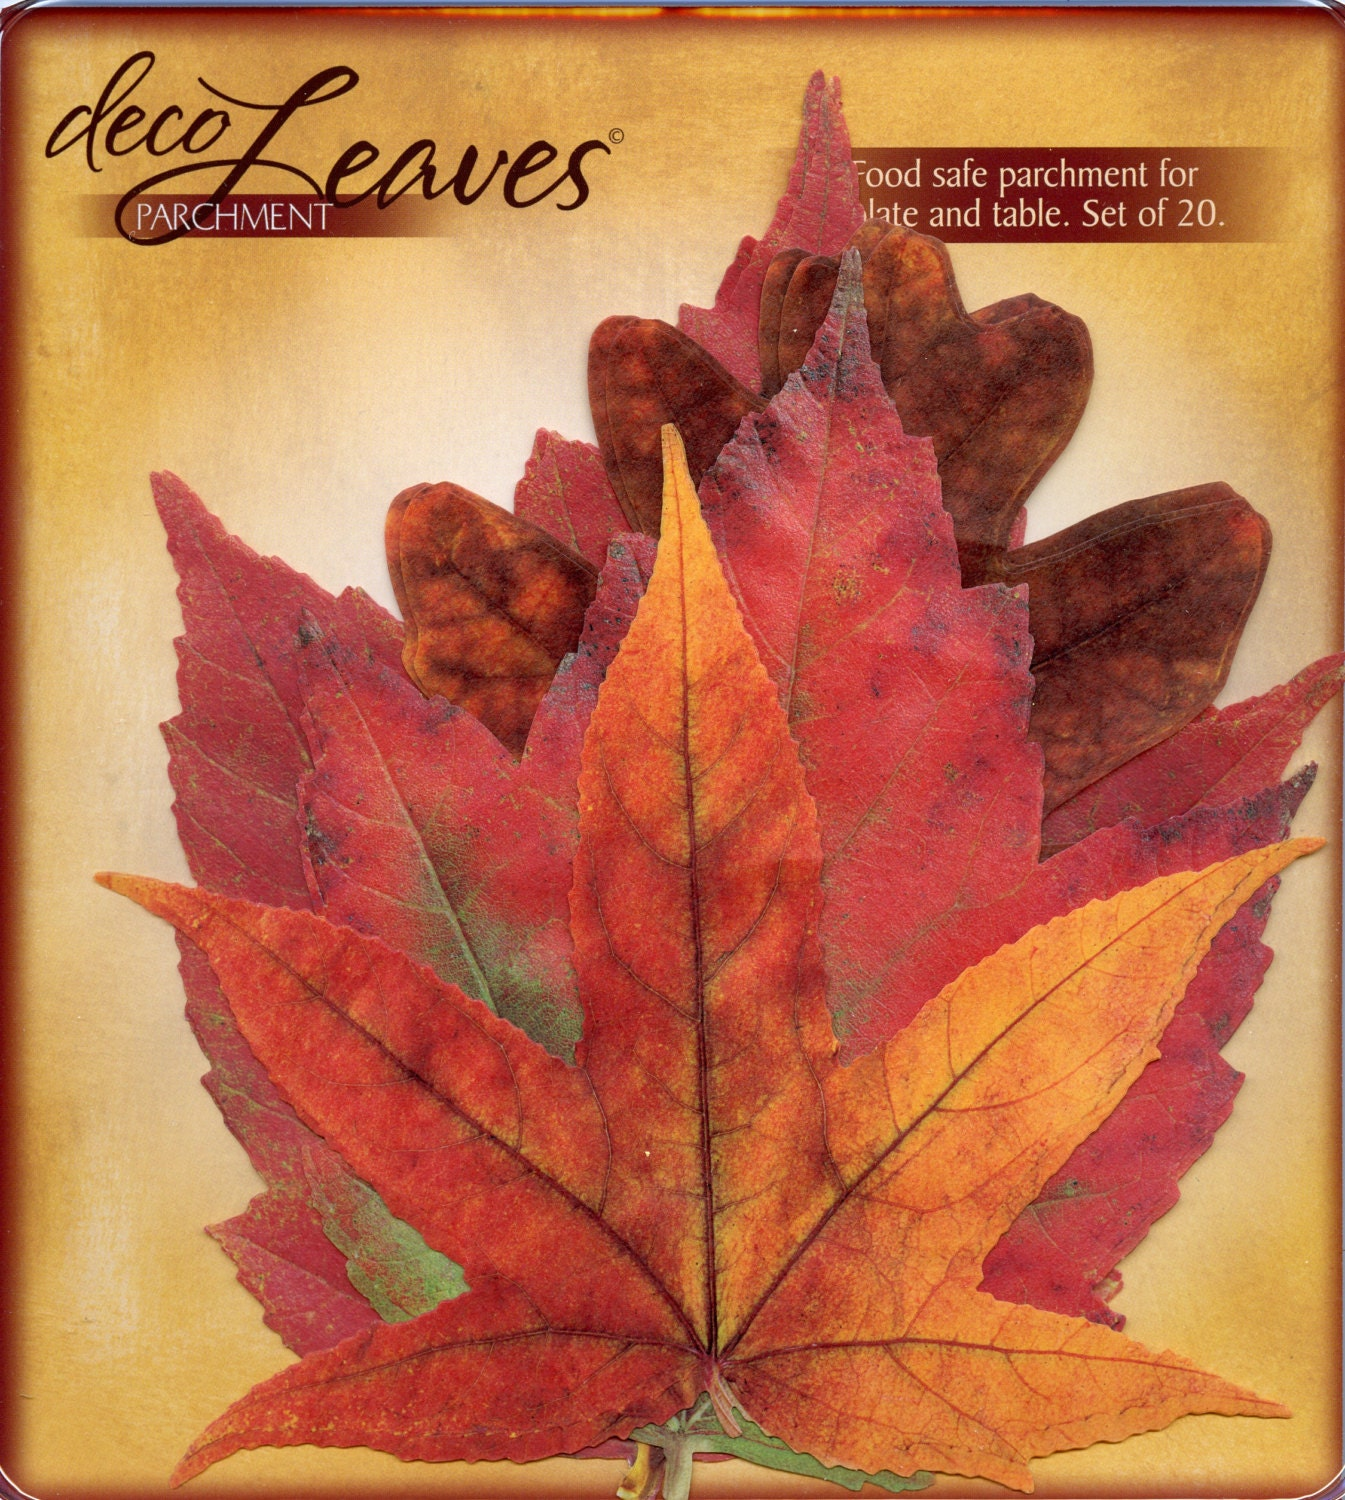 DECO LEAVES - Fall Leaves - Food Safe Parchment Leaves - OneDayLongAgo